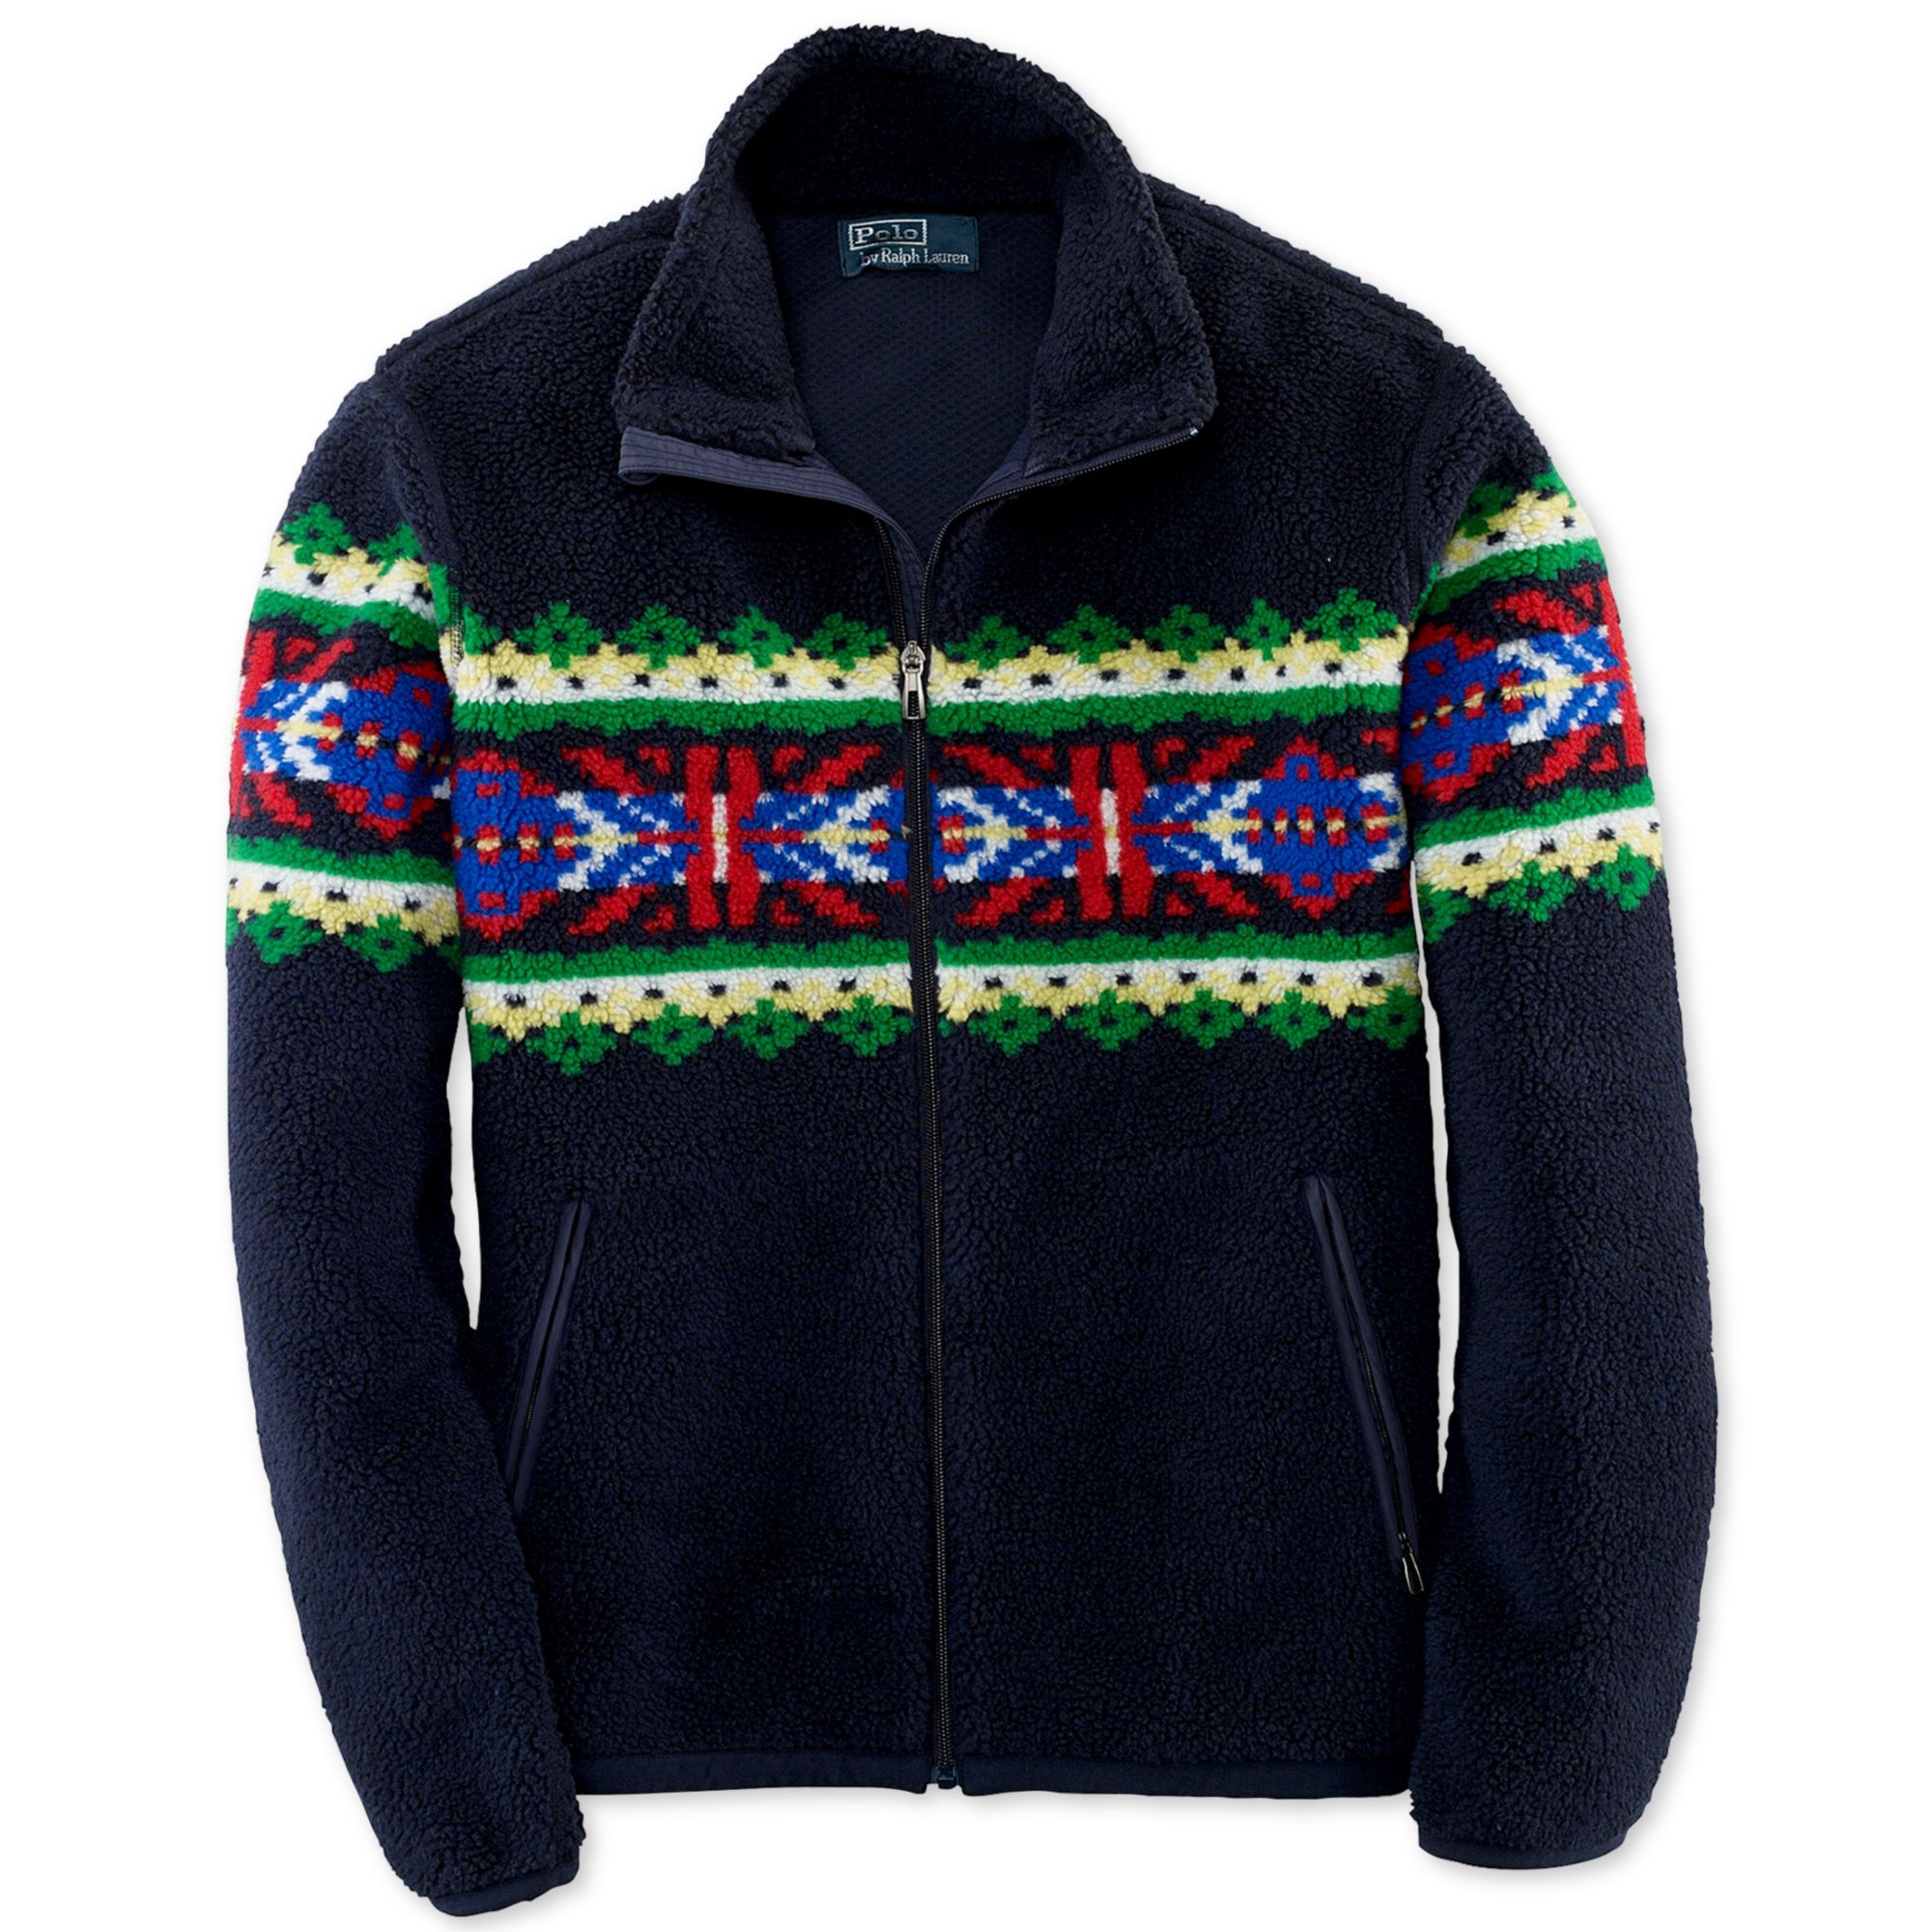 Ralph lauren Mock Neck Zipfront Patterned Fleece Jacket in Blue ...